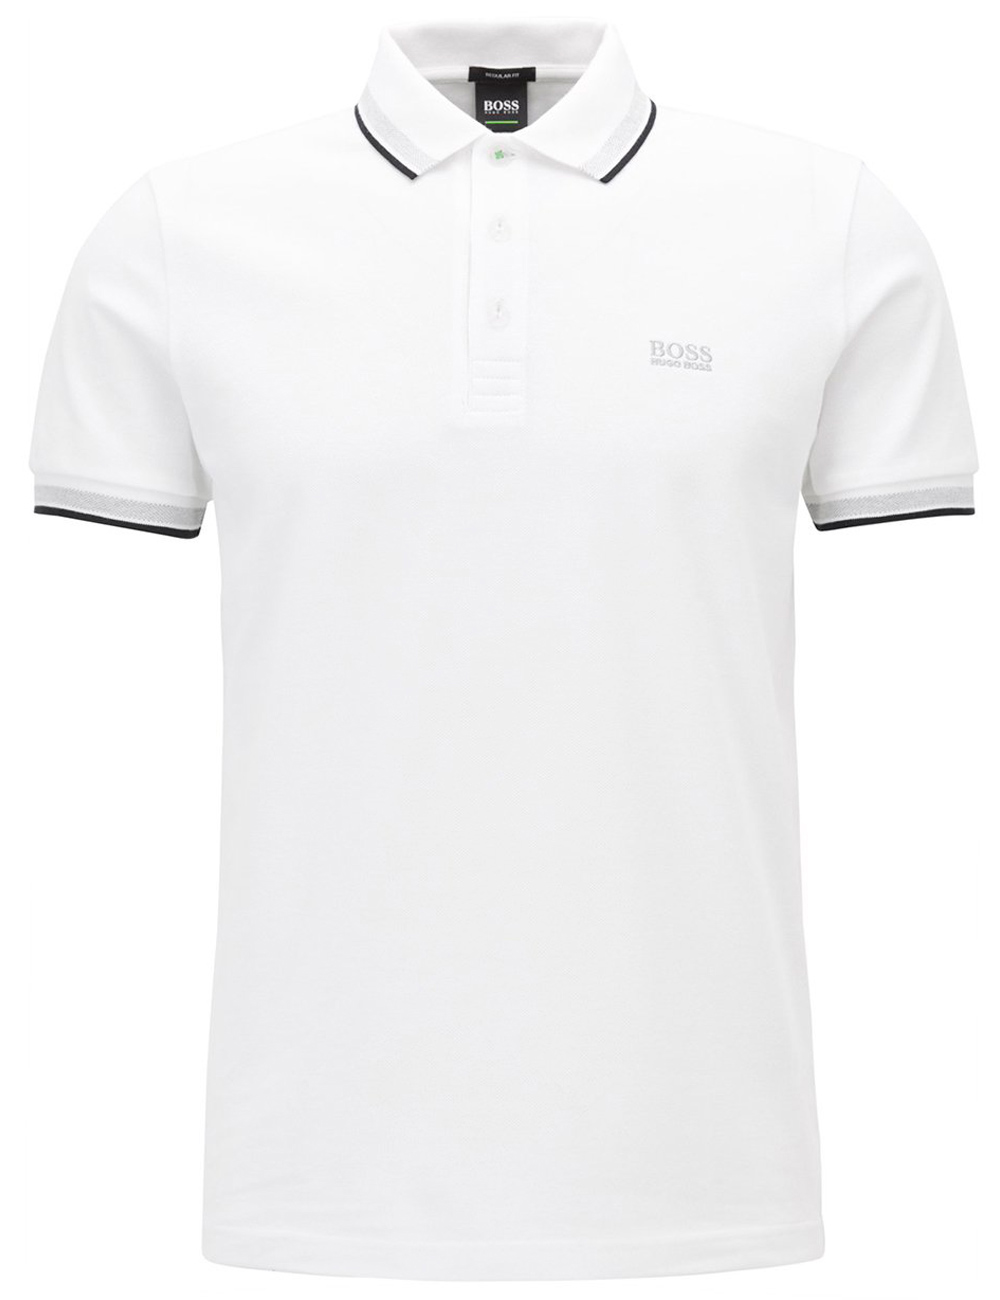 Herren Polo Shirt Hugo Boss Paddy Weiss